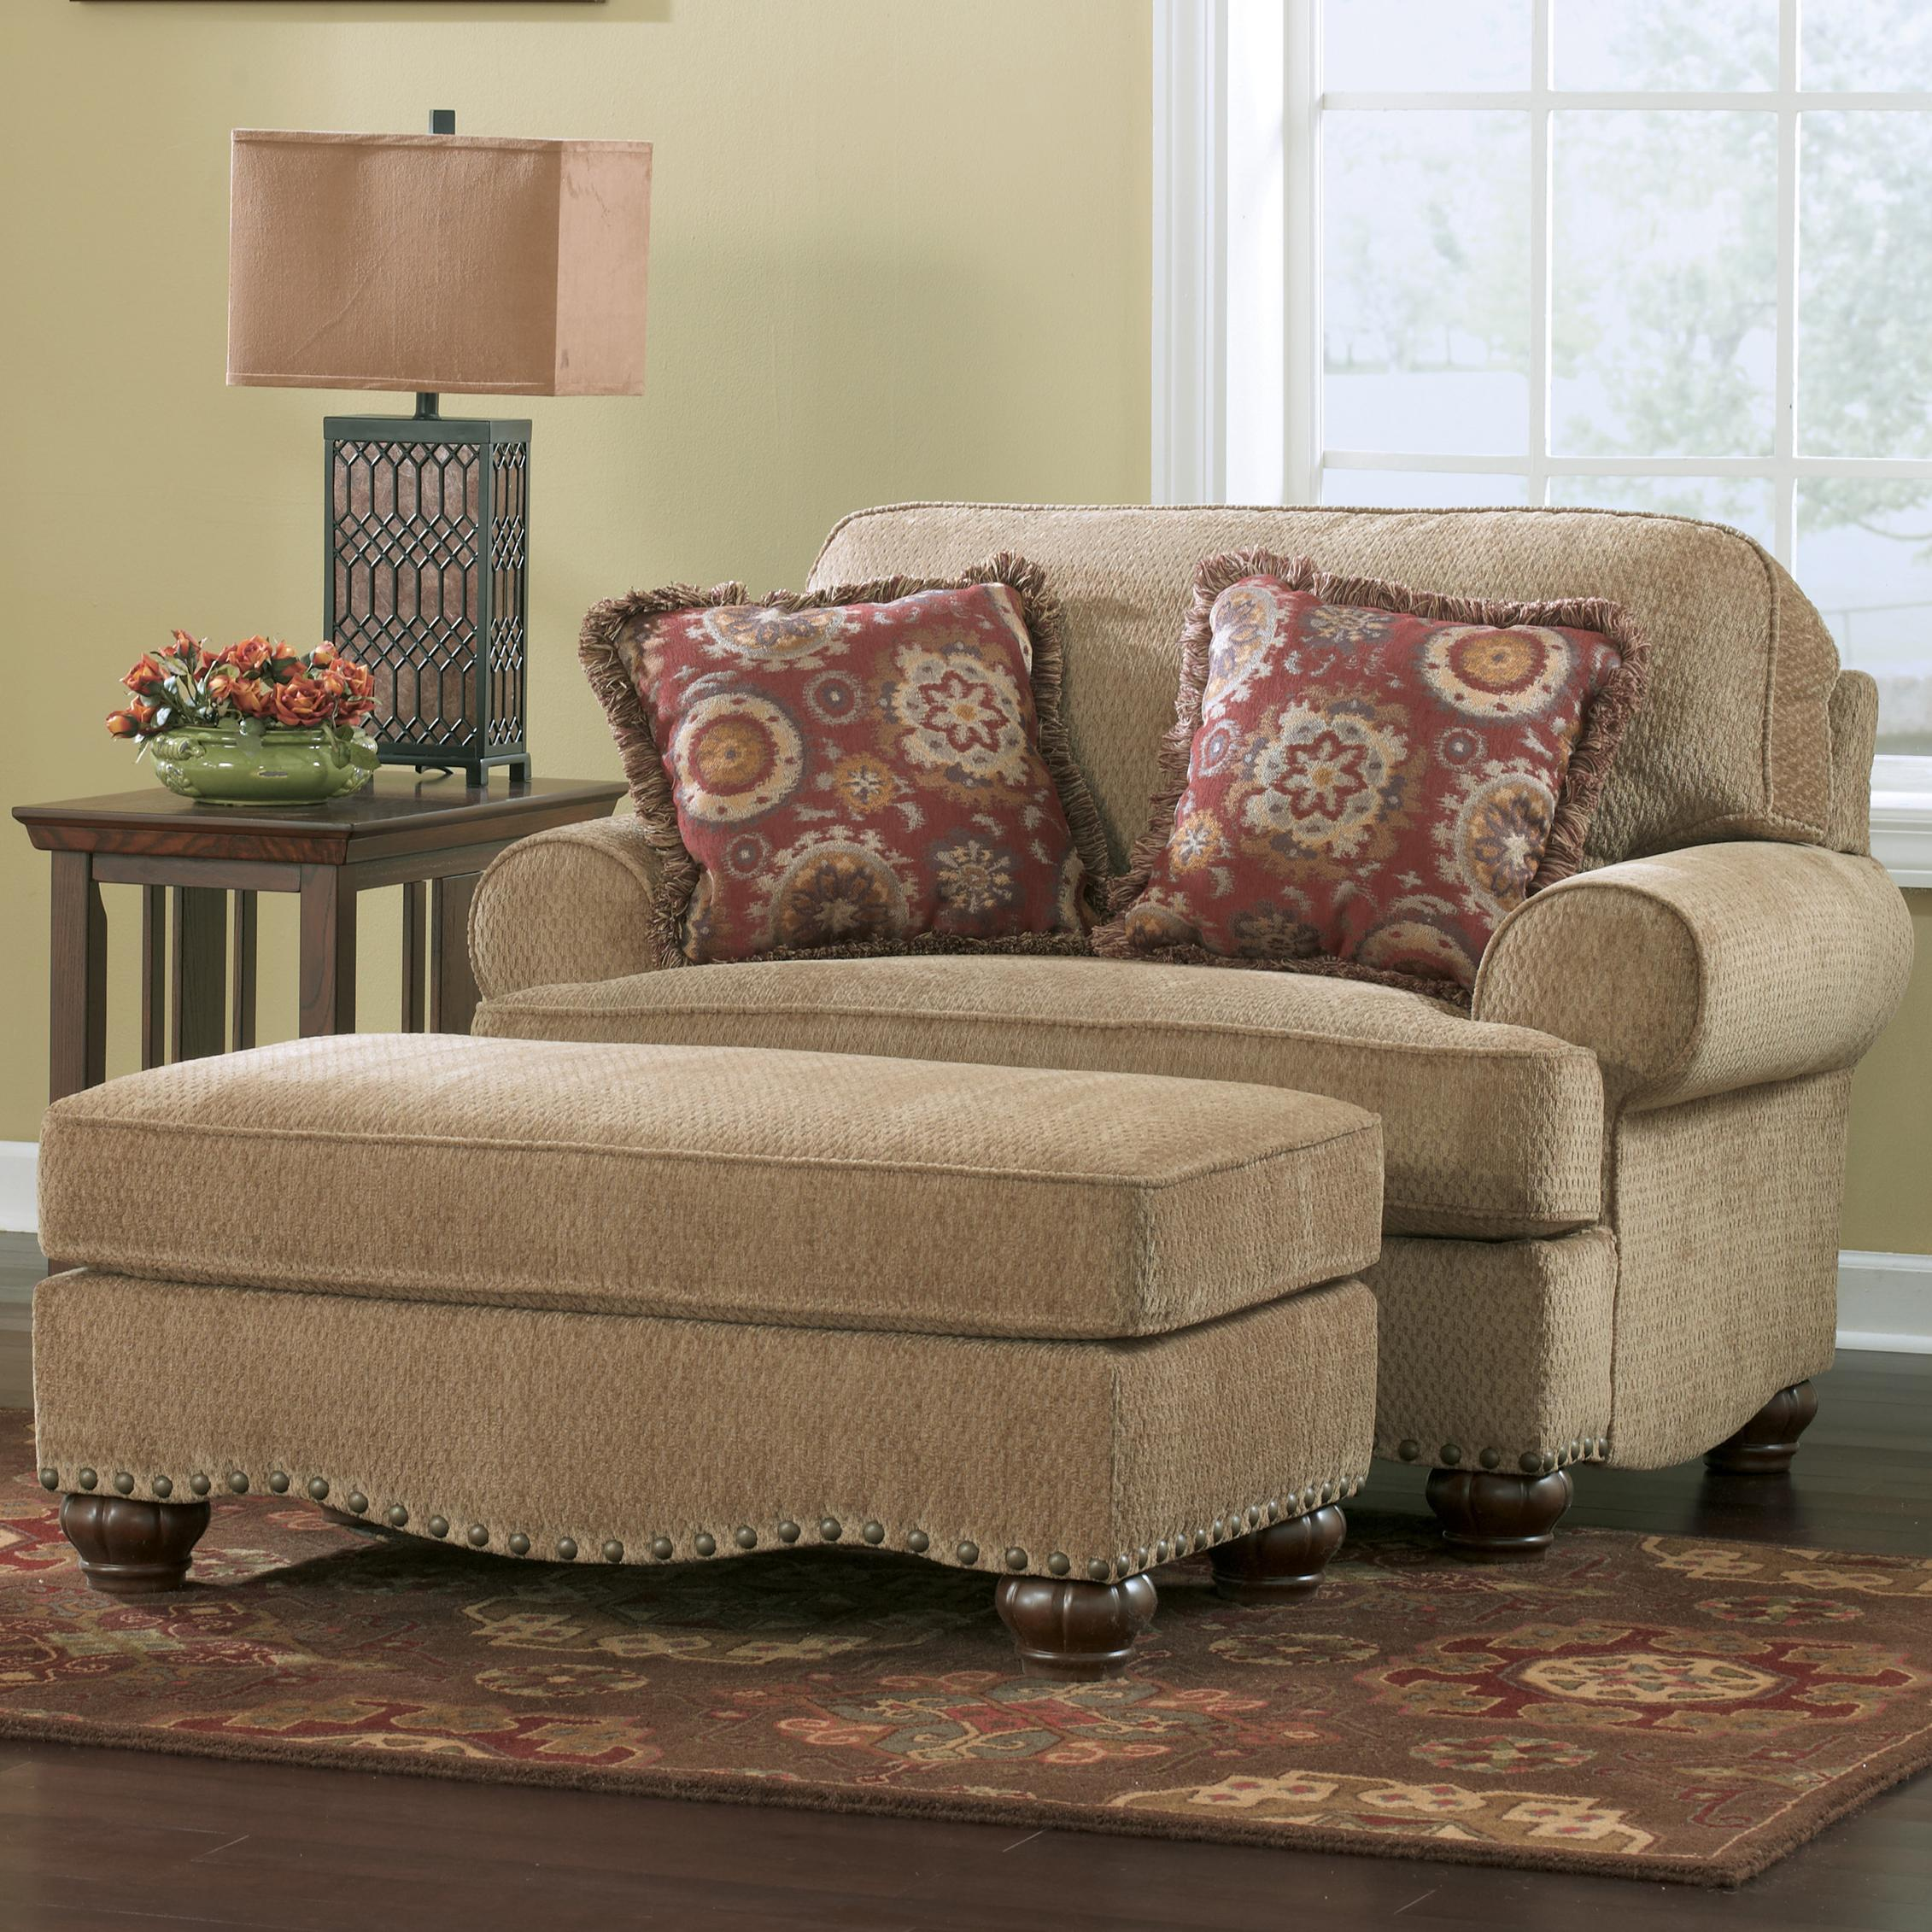 Ashley (Signature Design) Martin Court - Caramel Chair and 1/2 and Ottoman - Item Number: 7830323+7830314